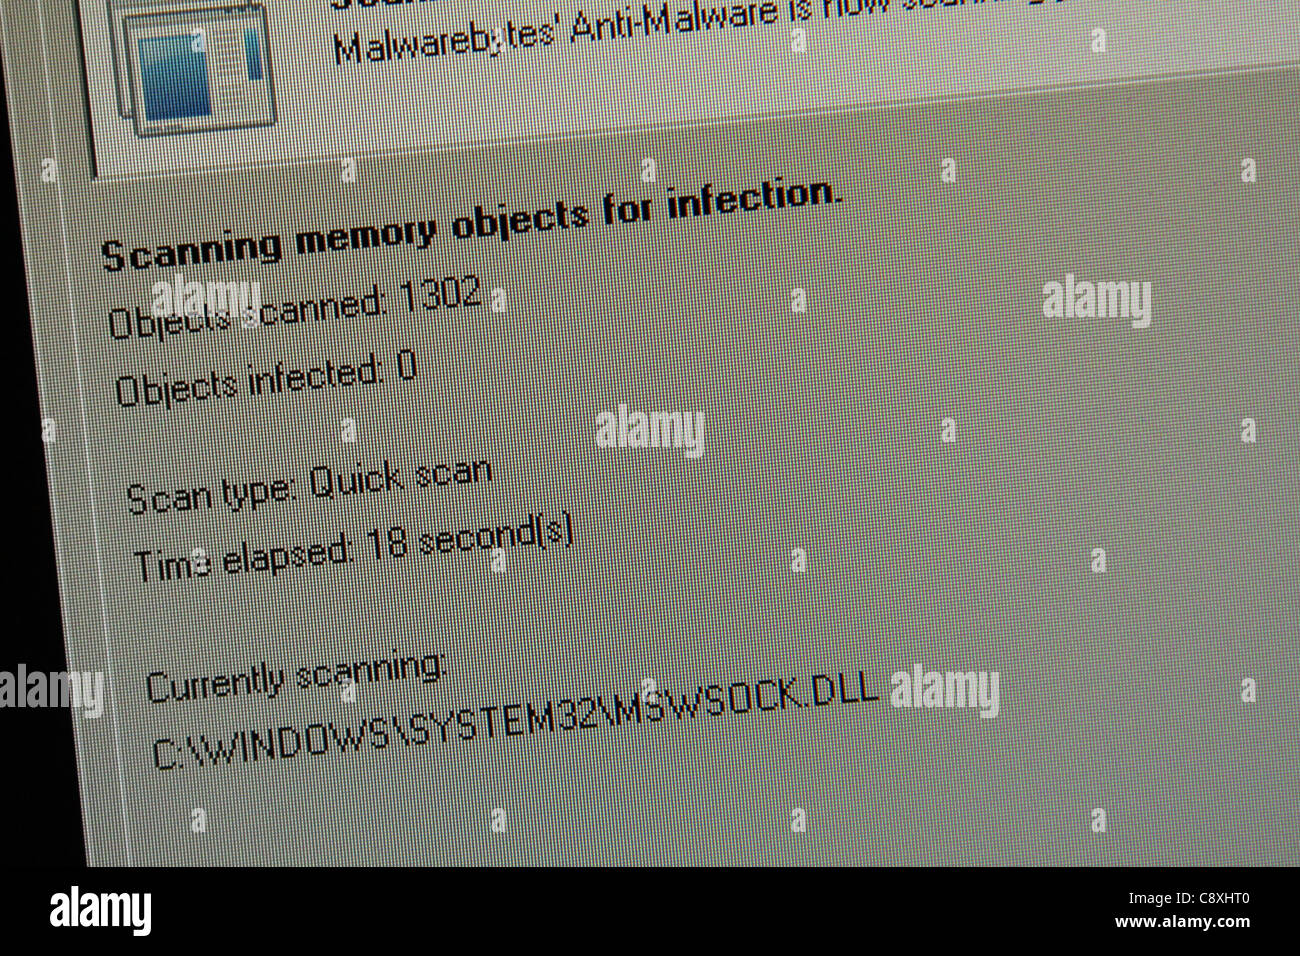 scan scanning computer virus spyware infection - Stock Image